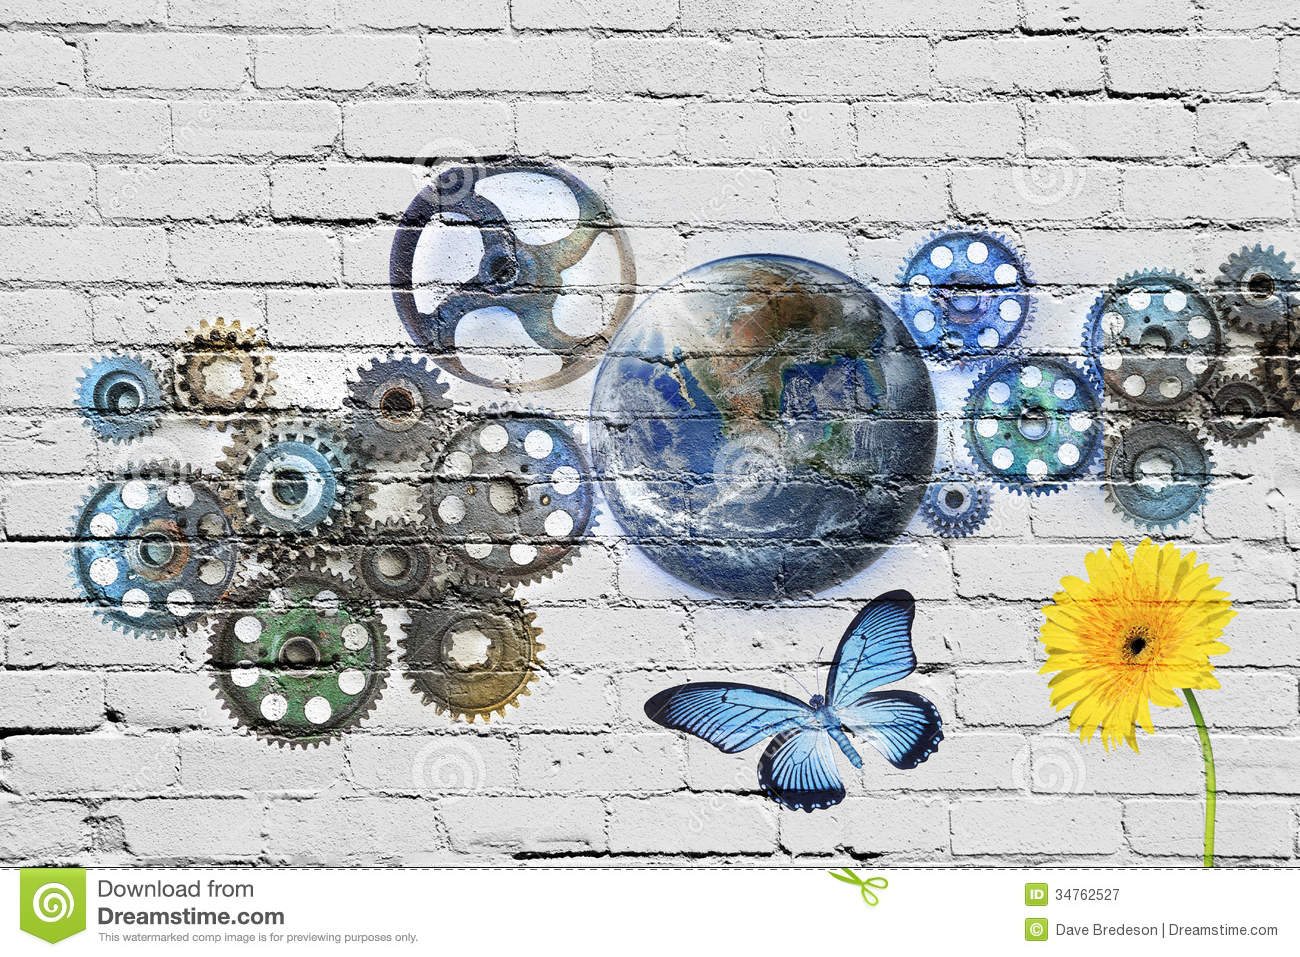 Cogs Earth Graffiti Sustainable Background